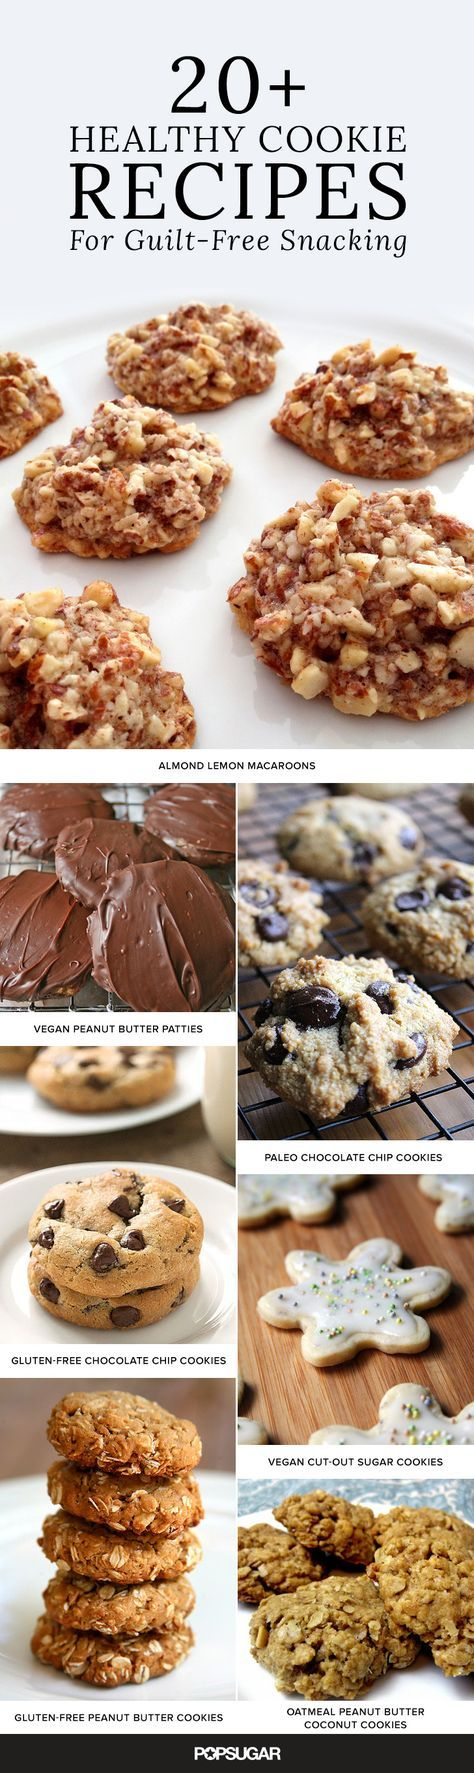 Satisfy your inner cookie monster with these recipes that won't kill your diet. Vegan, Paleo or gluten free? We have the cookies for you!